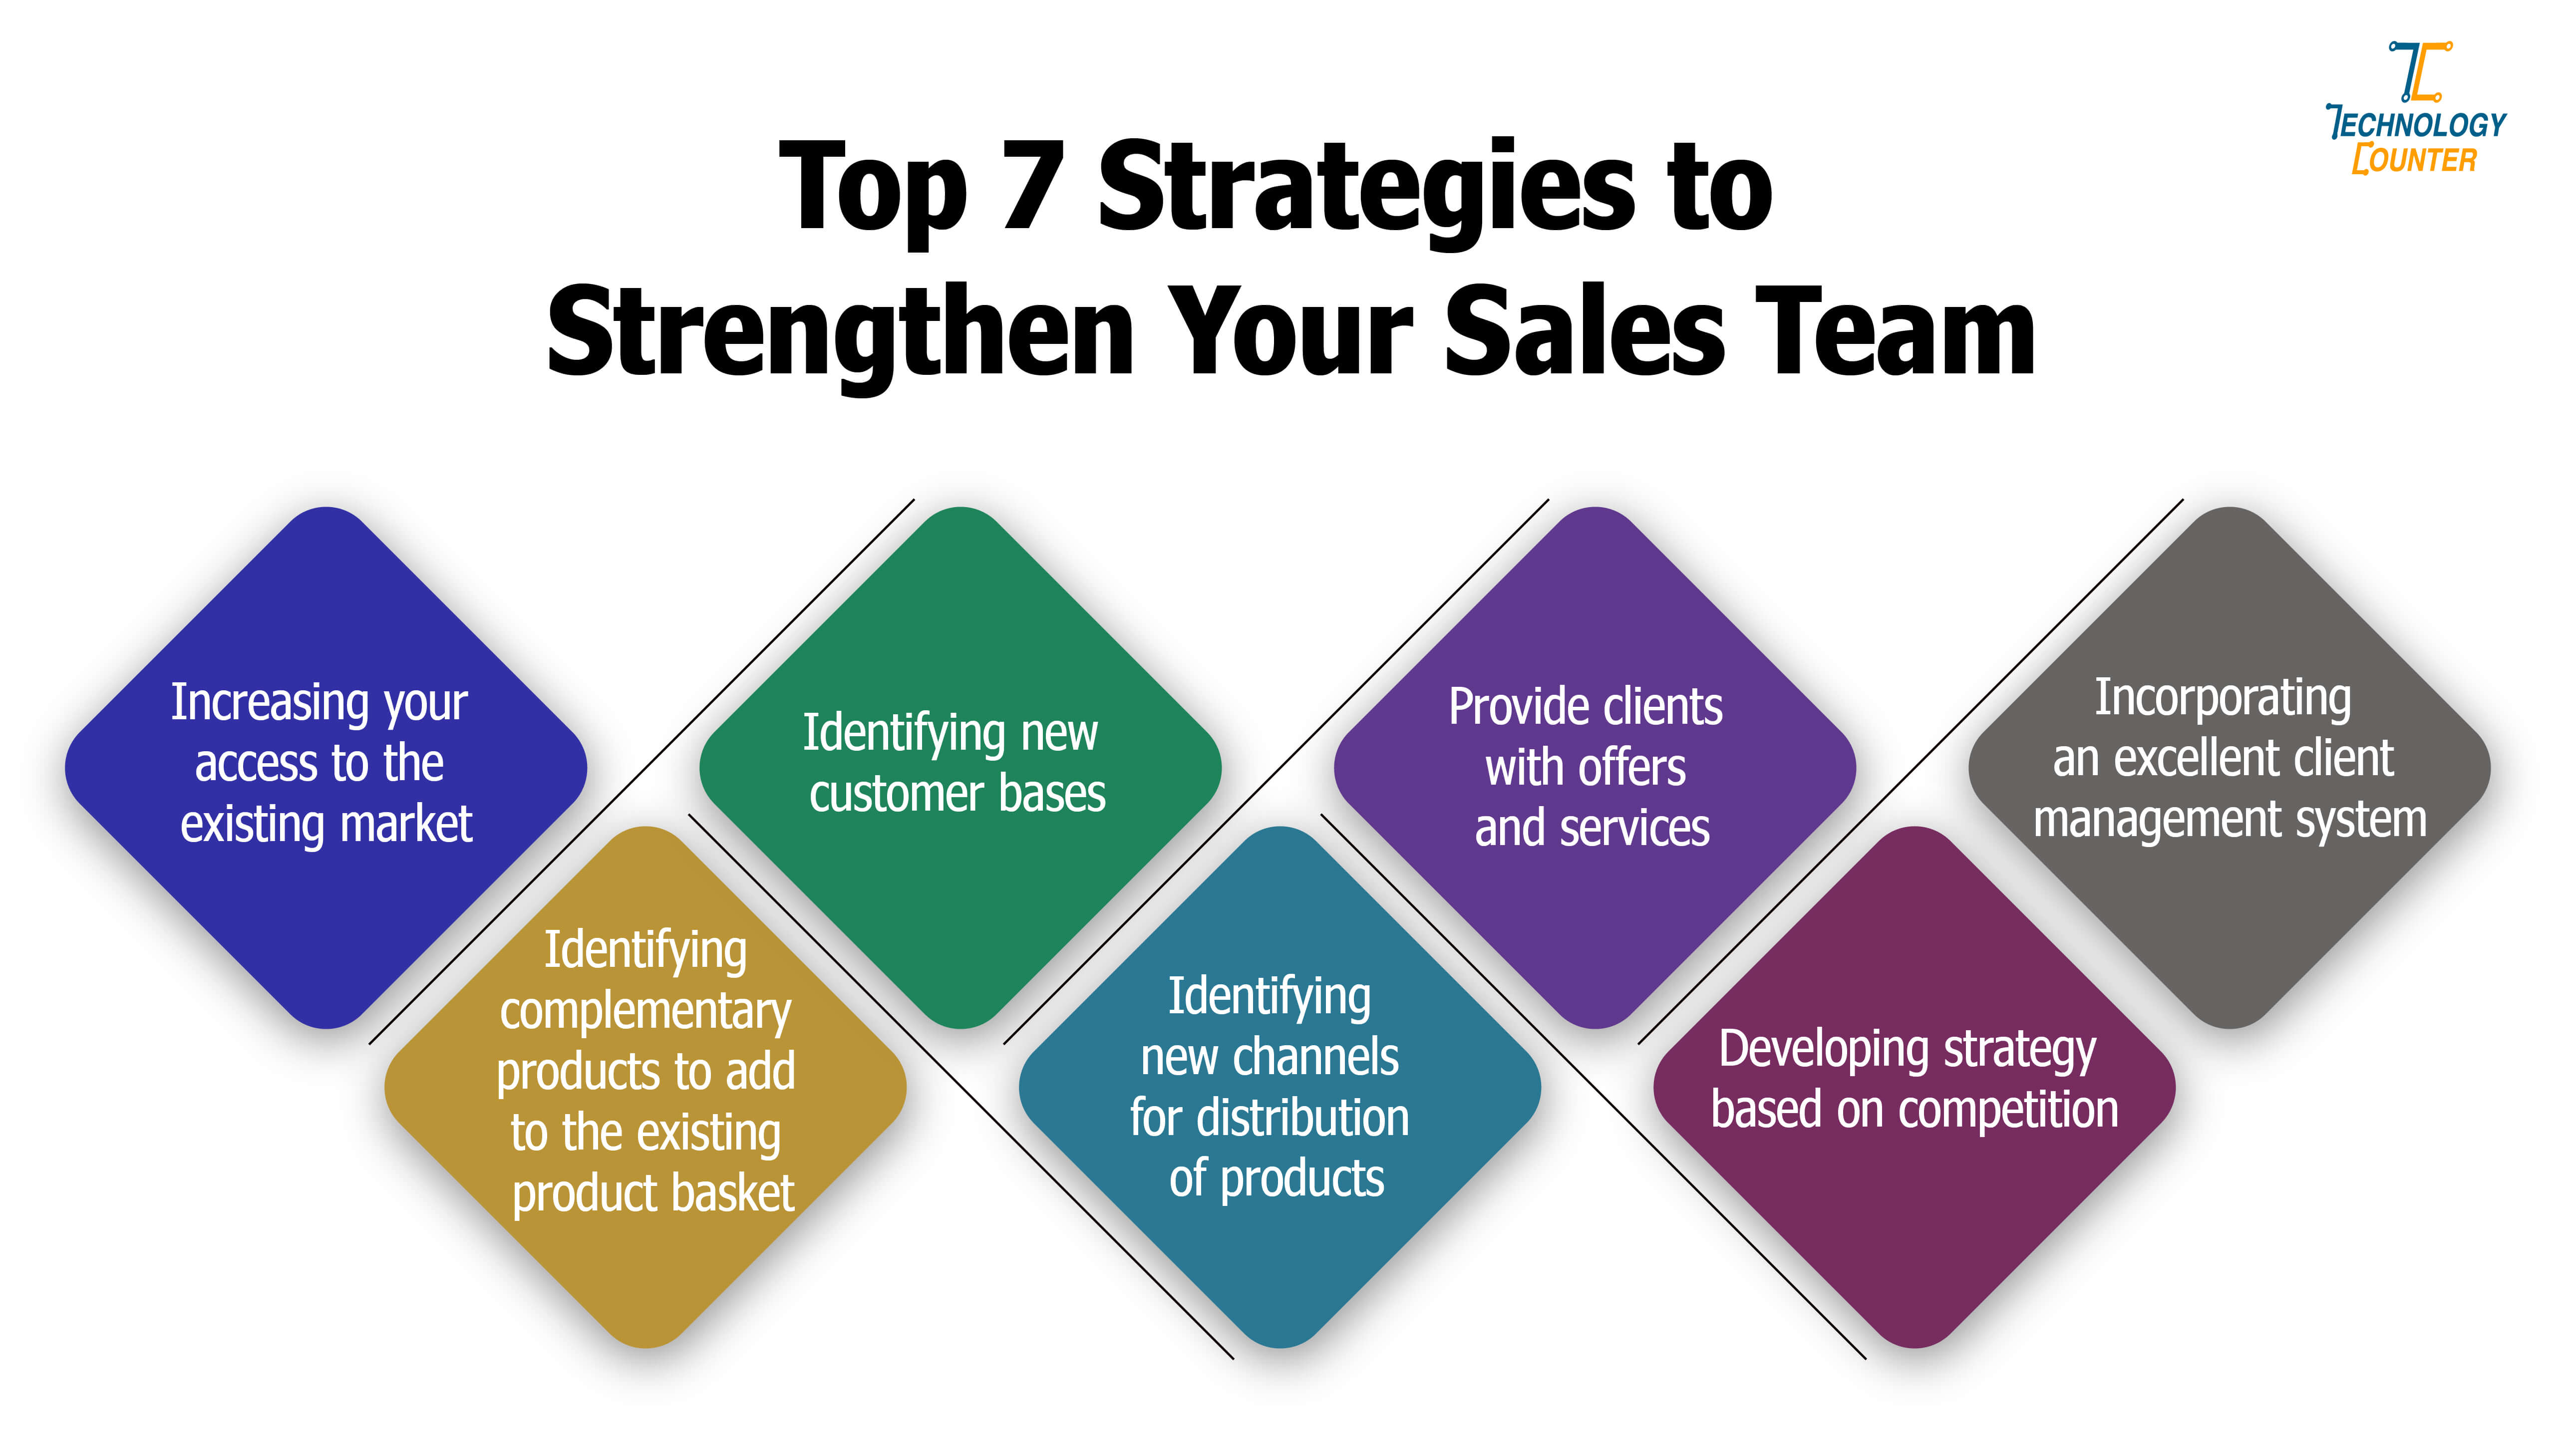 Top 7 Strategies to Strengthen Your Sales Team